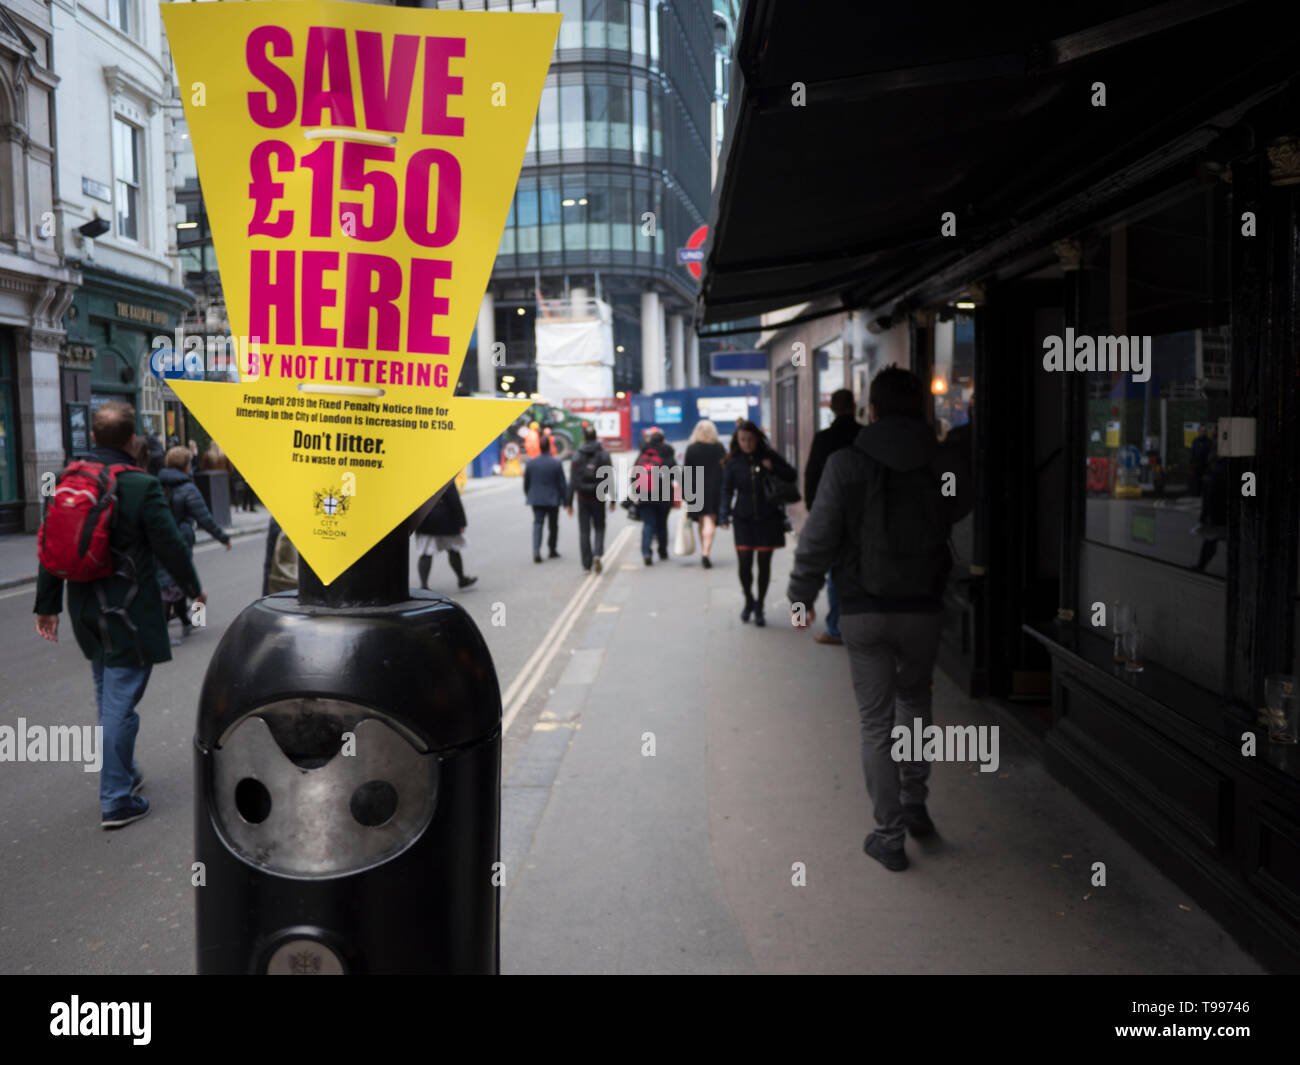 Anti litter sign central london, threatening fixed penalty fine Save £150  here, Dont litter - Stock Image